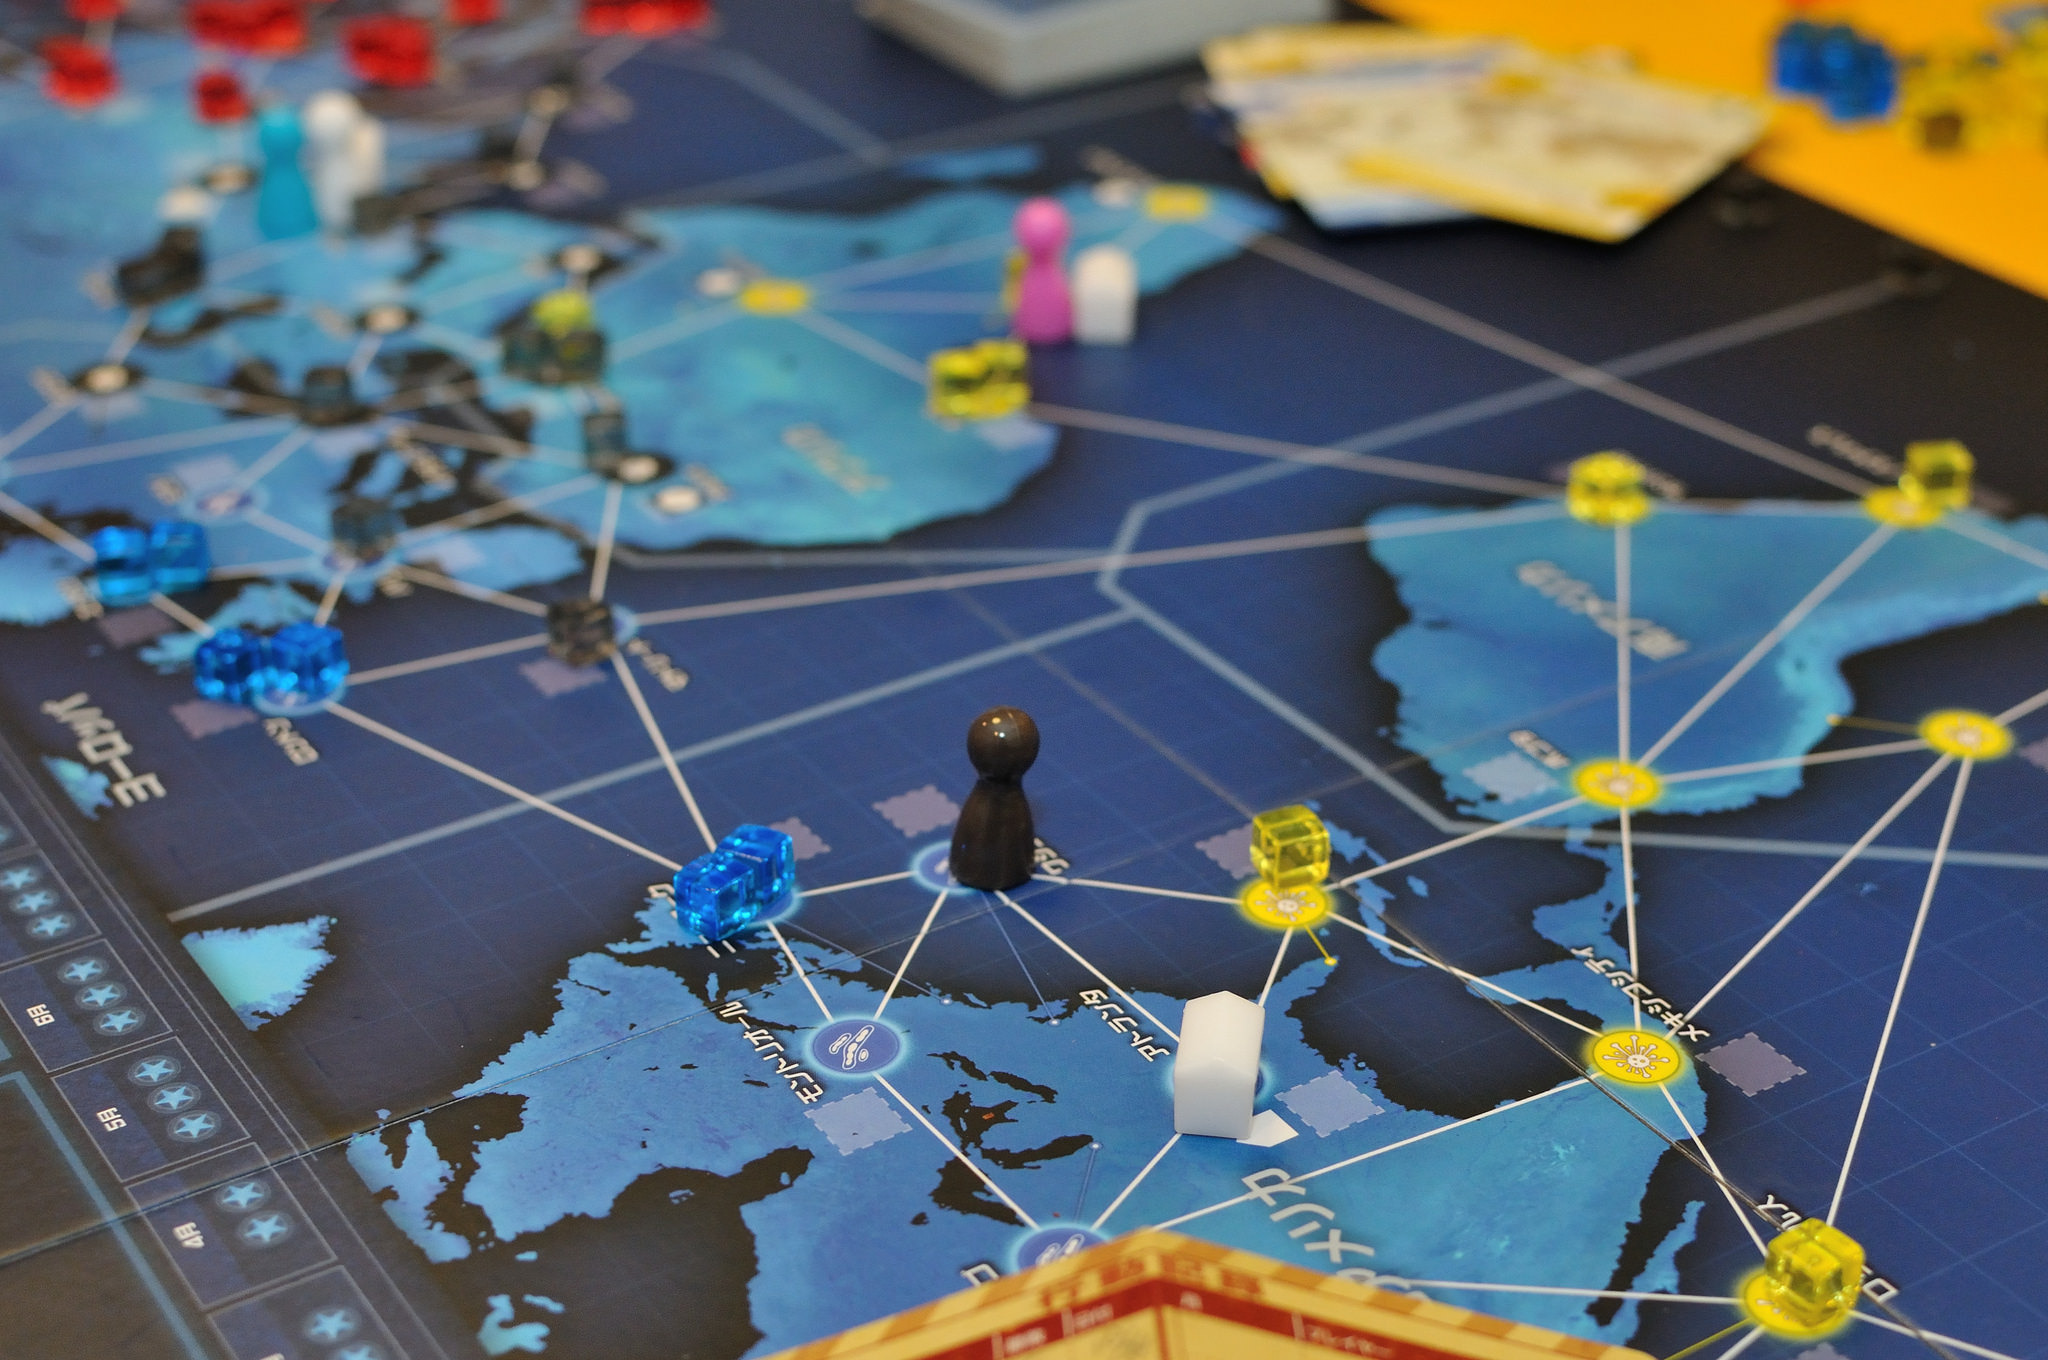 The year in boardgames